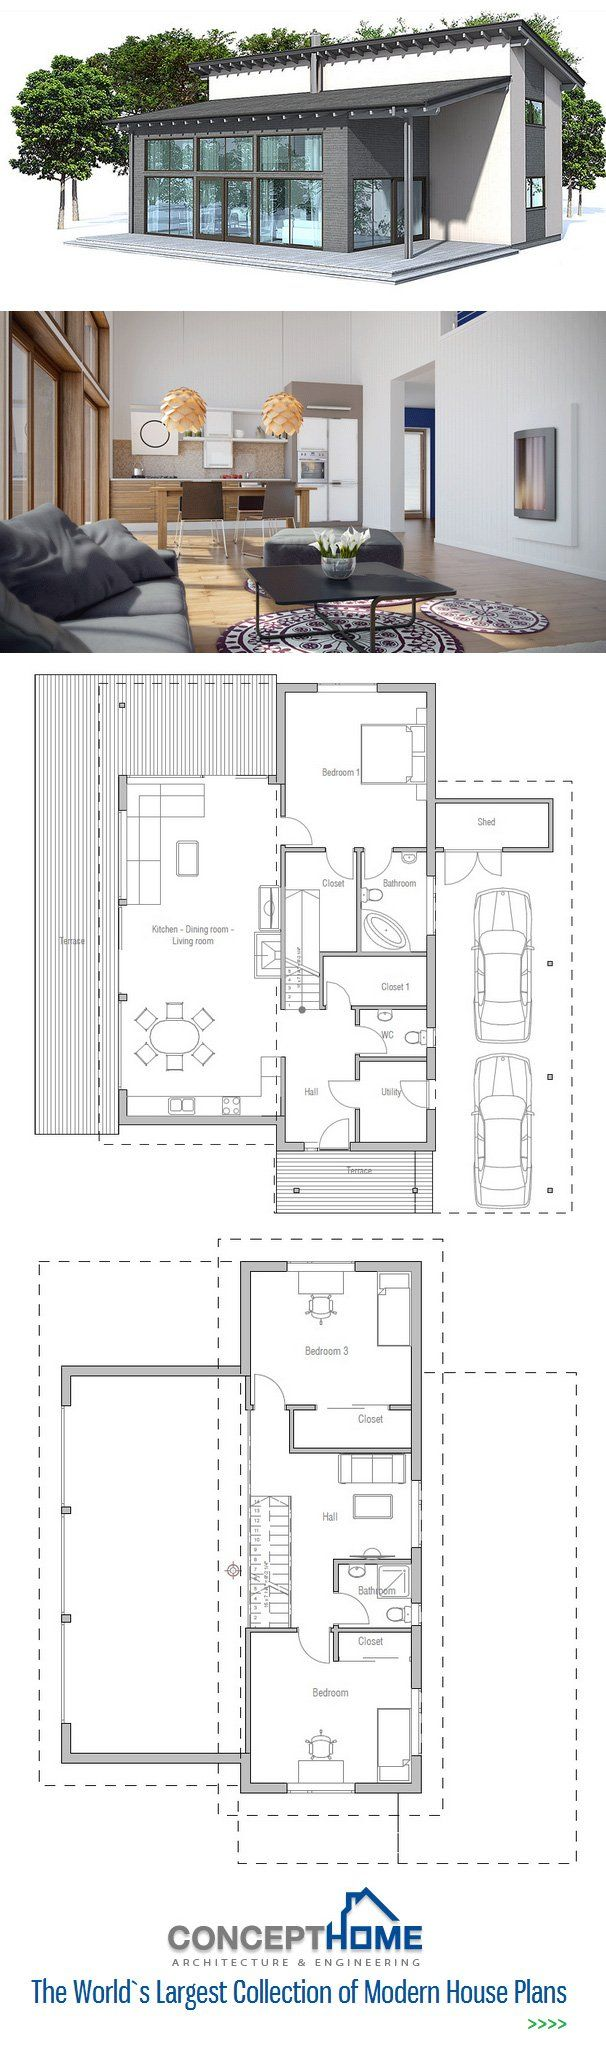 Container house layout plans